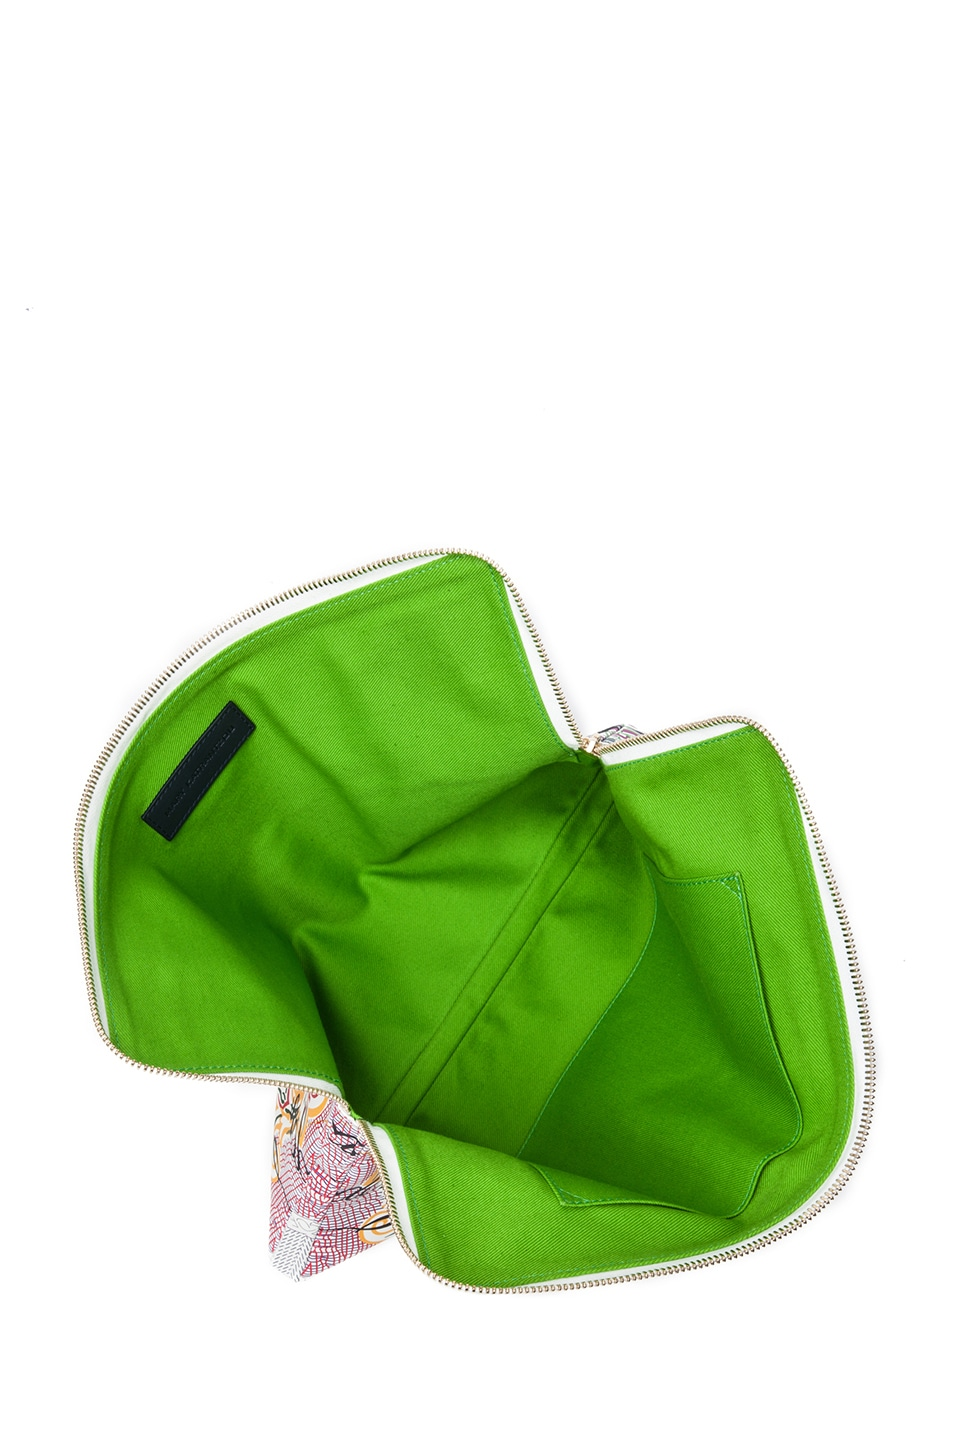 Image 4 of Mary Katrantzou Large Leather Clutch in Pound